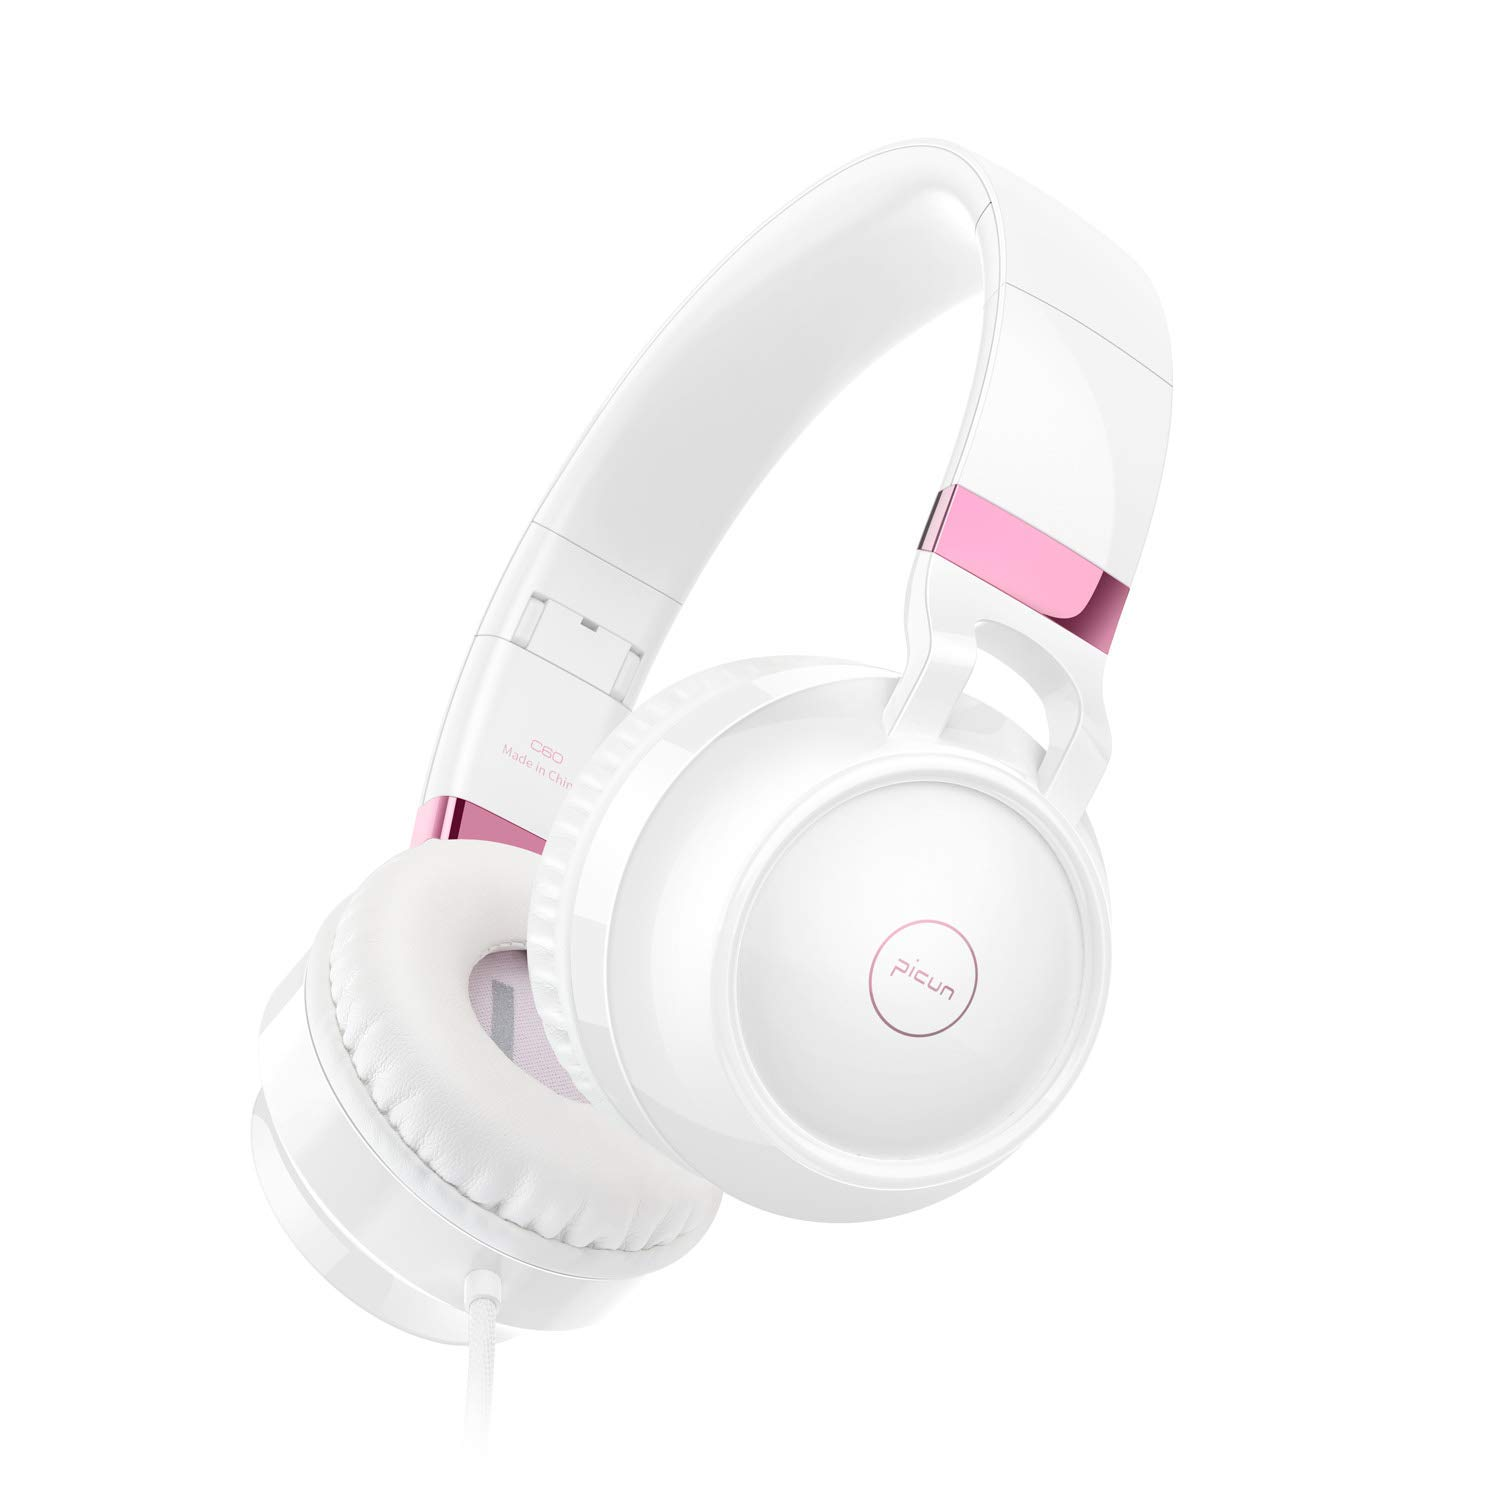 Noise Cancelling Headphones Over Ear, Picun C60 Stereo Headset for Women Girls, Earphones with Built-in Microphone Suitable for Cellphone Android Devices Laptop and Computer - White [並行輸入品]   B07S64HFYP